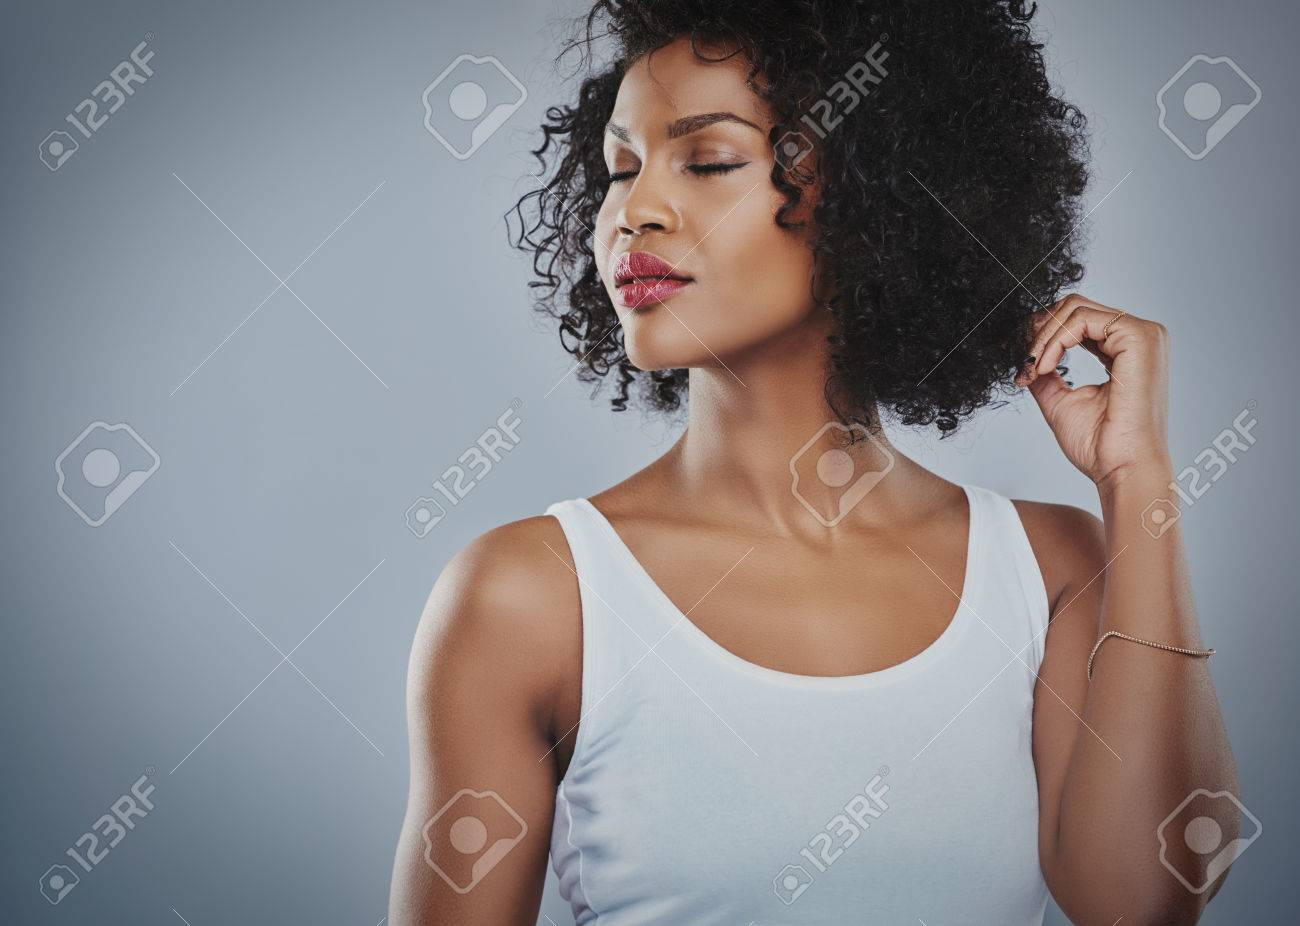 Cropped upper body view of beautiful young African woman looking sideways with closed eyes and fingers touching hair and copy space - 57528906